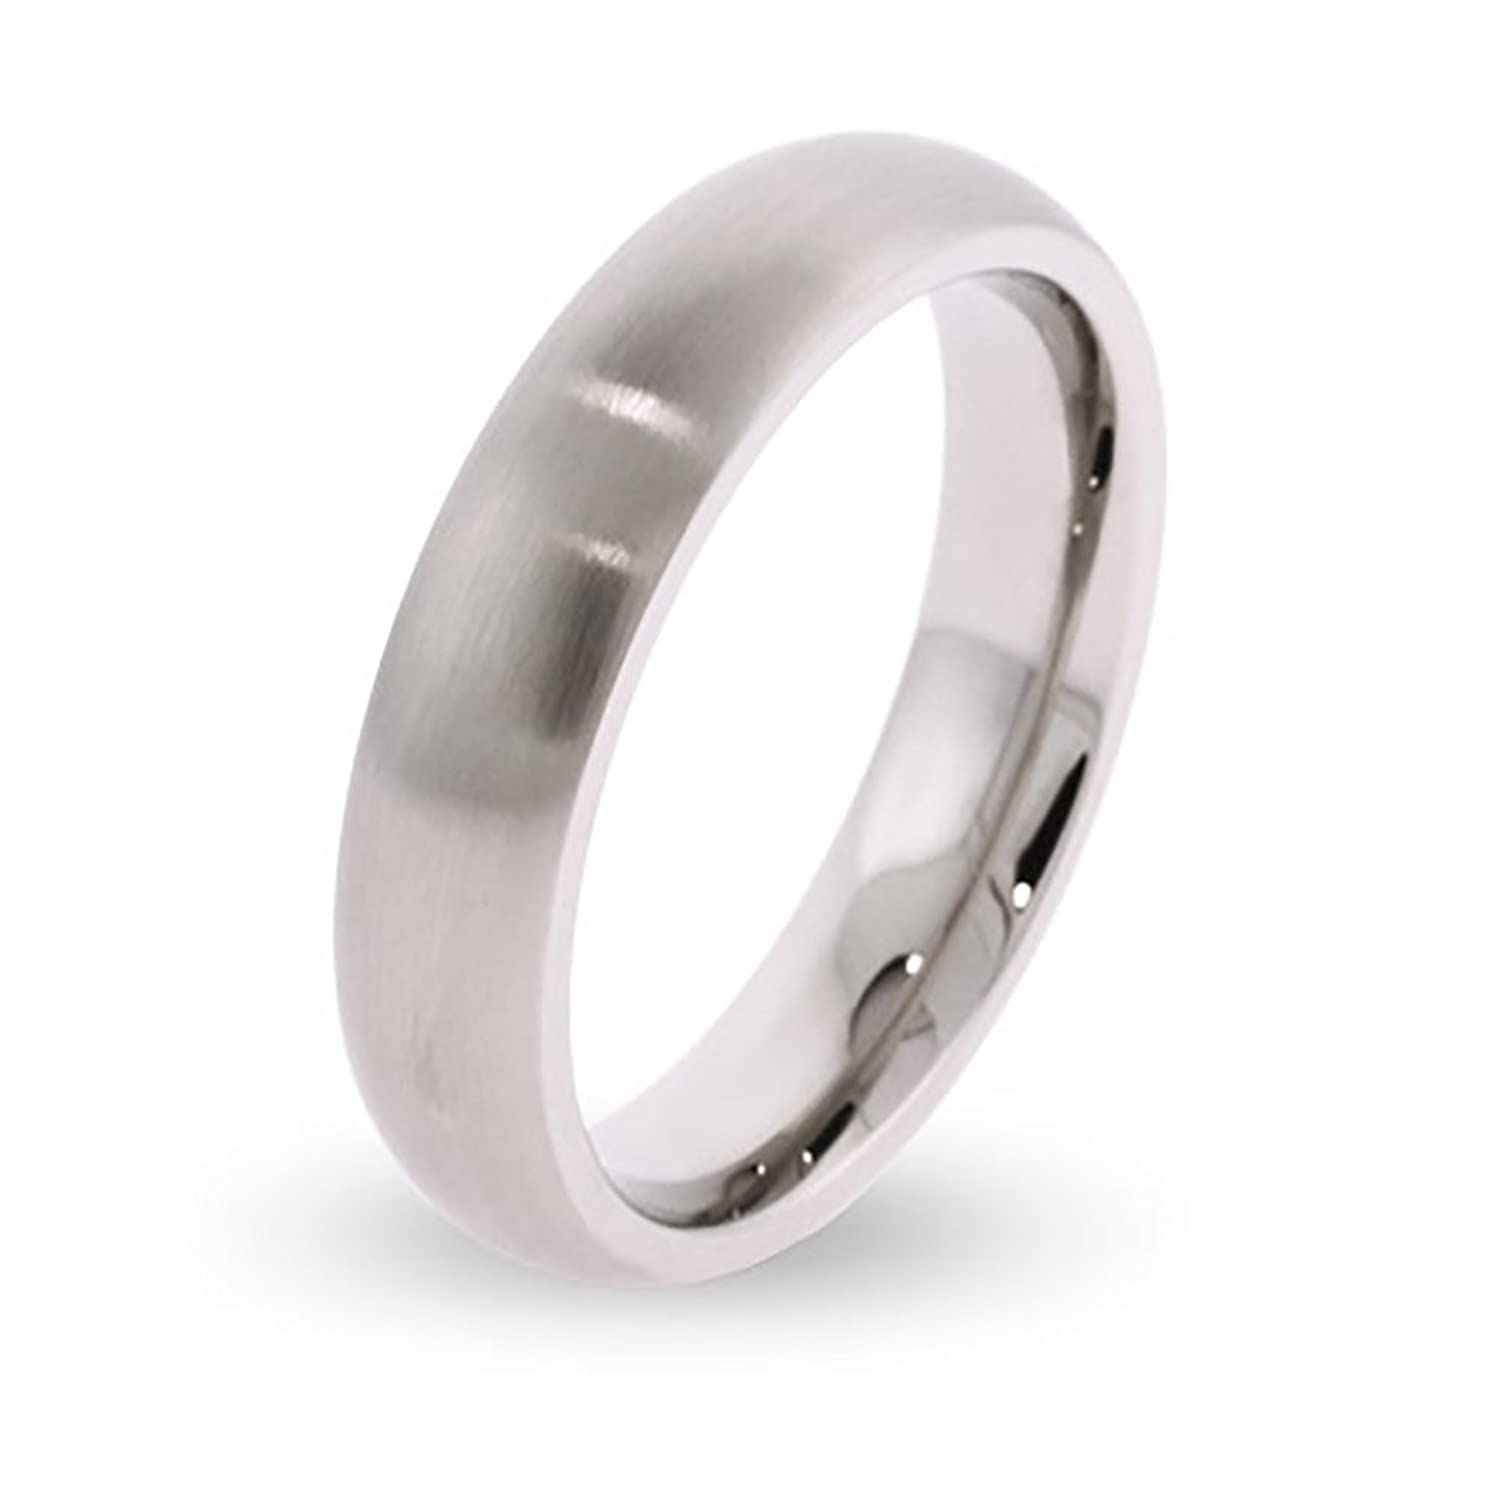 novelty more c stainless steel wedding band 5mm Brushed Stainless Steel Wedding Band